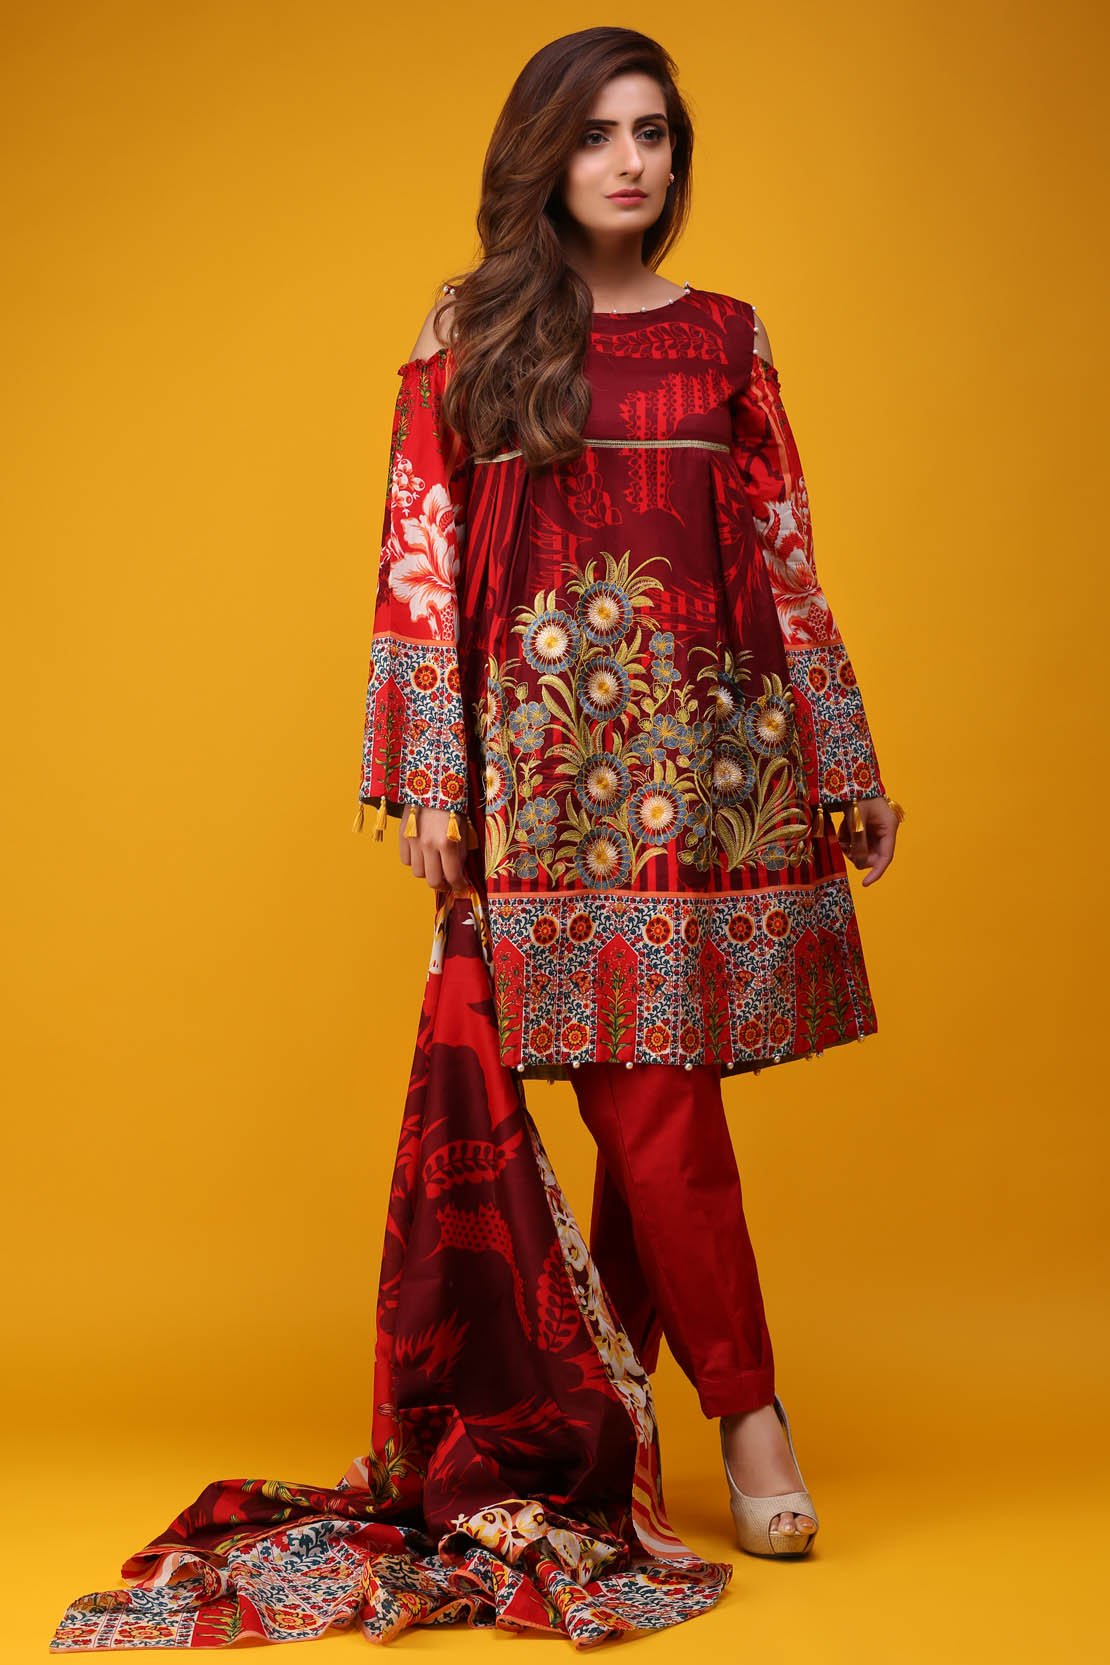 49f74ec9a0 It is said that it does not create, but it innovates unique designs and  prints for its customers. Girls and women of different ages opt for warda  for its ...